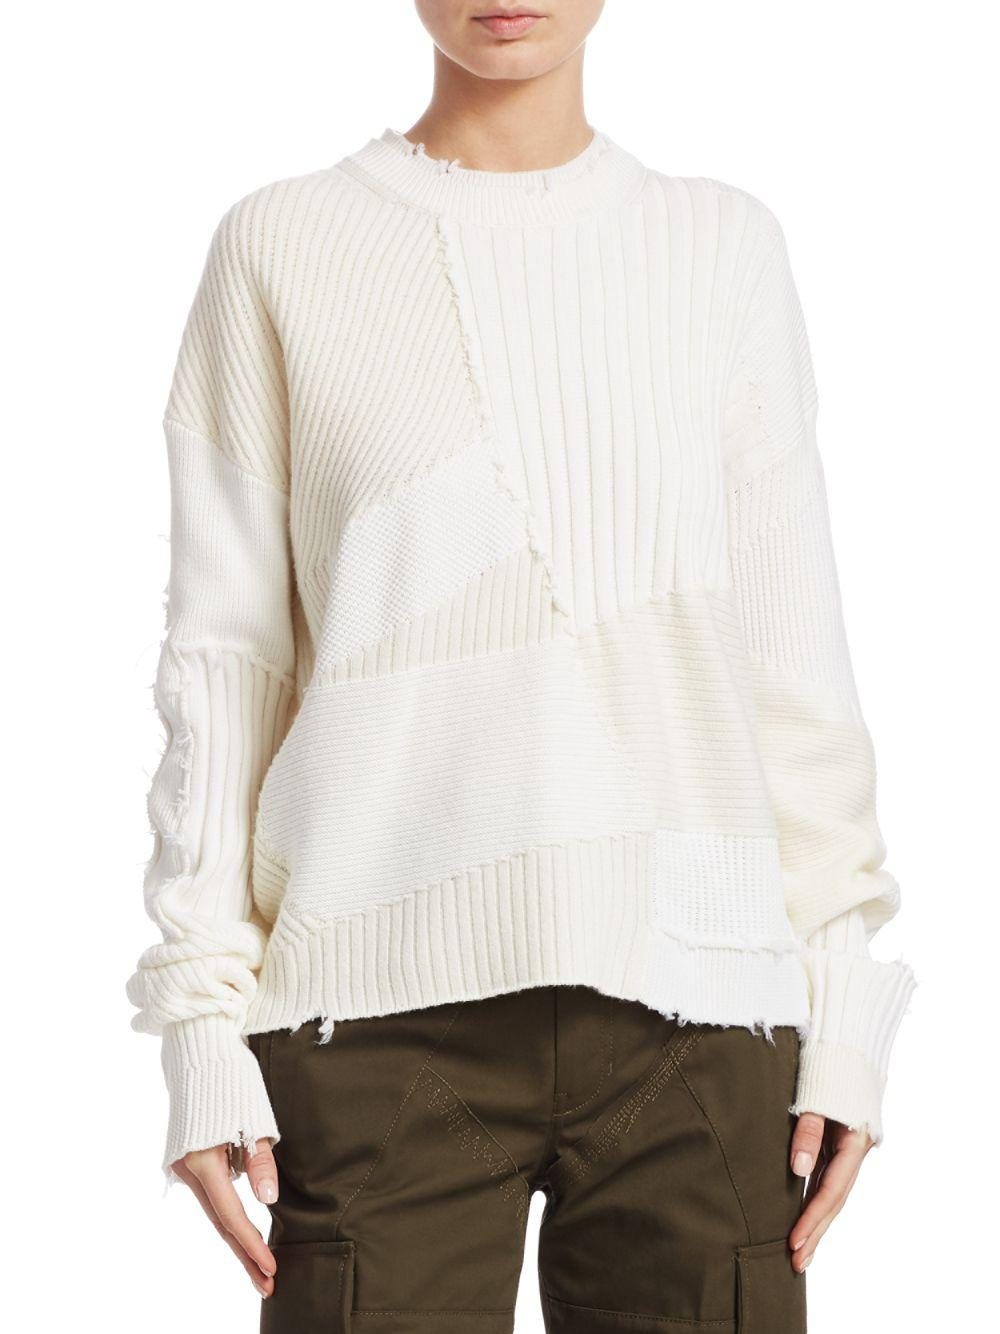 f728aa1db88e24 Lyst - Helmut Lang Military Grunge Sweater in White - Save 40%